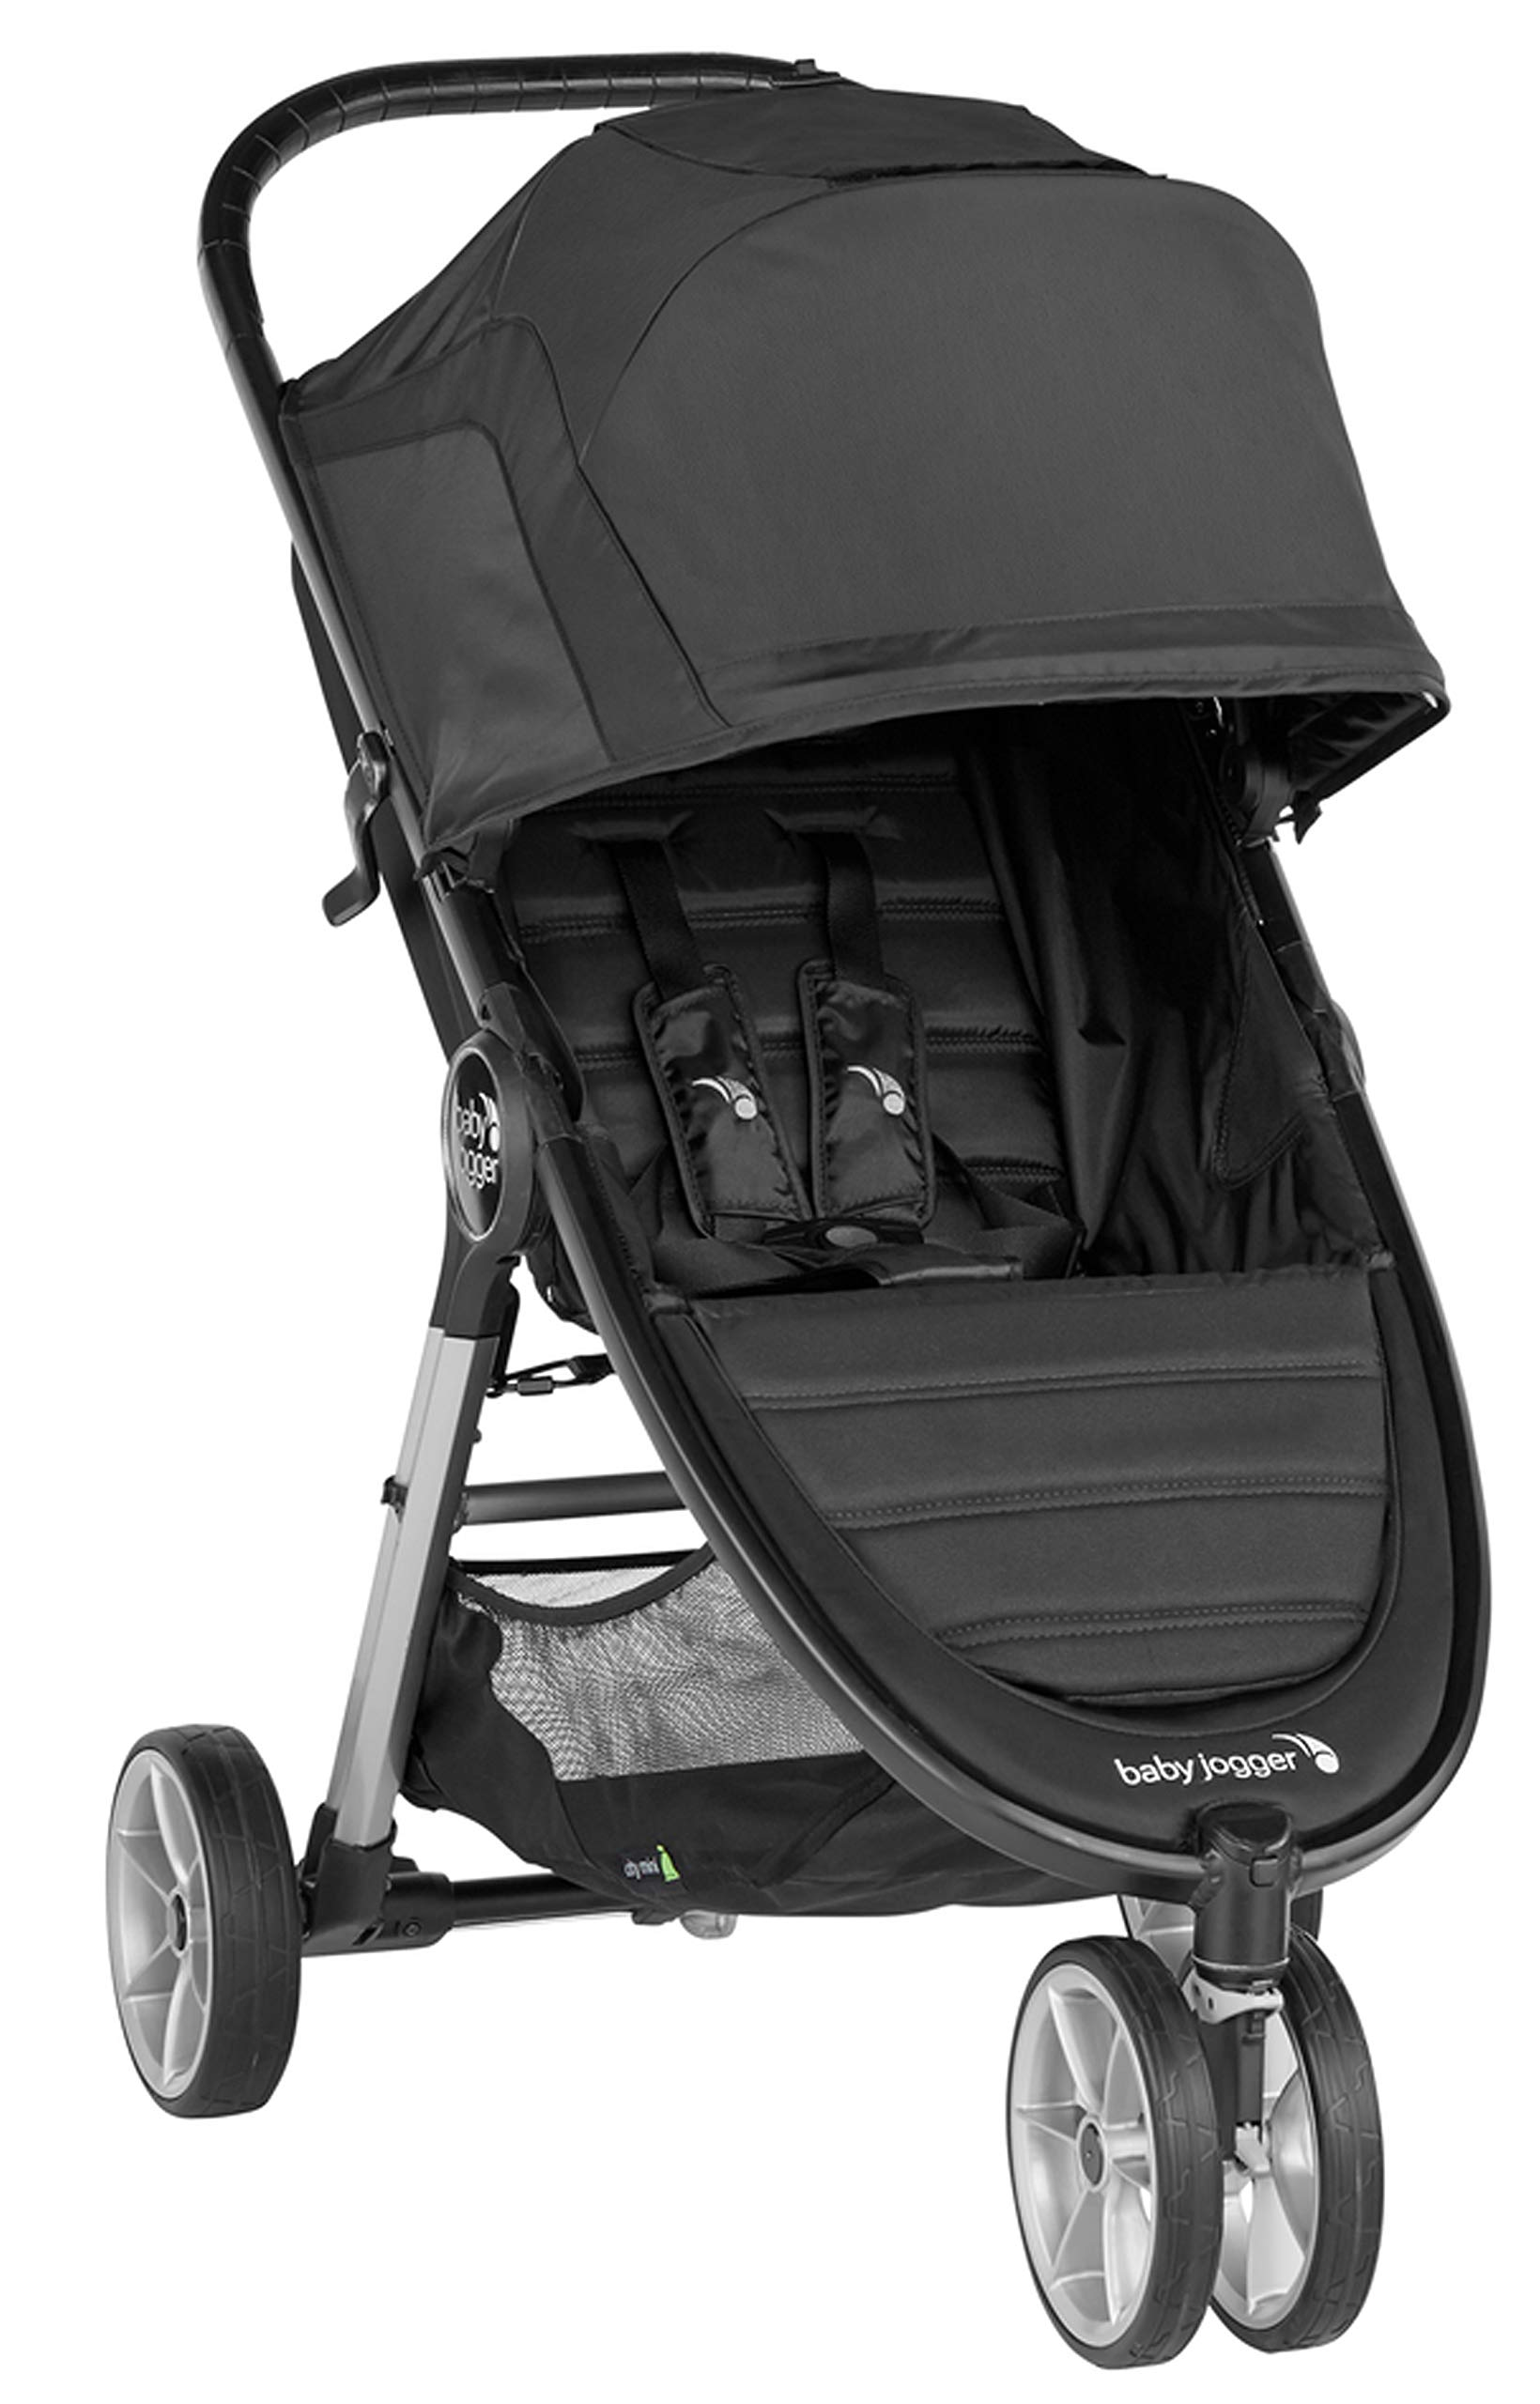 baby jogger City Mini 2 Single Stroller Jet Baby Jogger The baby jogger city mini 2 has an all new lightweight and compact design with the signature one-hand compact fold, with an auto-lock it's remarkably nimble and ready for adventure Lift a strap with one hand and the city mini 2 folds itself: simply and compactly. The auto-lock will lock the fold for transportation or storage The seat, with an adjustable calf support and near-flat recline, holds a child weighing up to 22kg and includes a 5-point stroller harness to keep them comfortable and safely secured 1